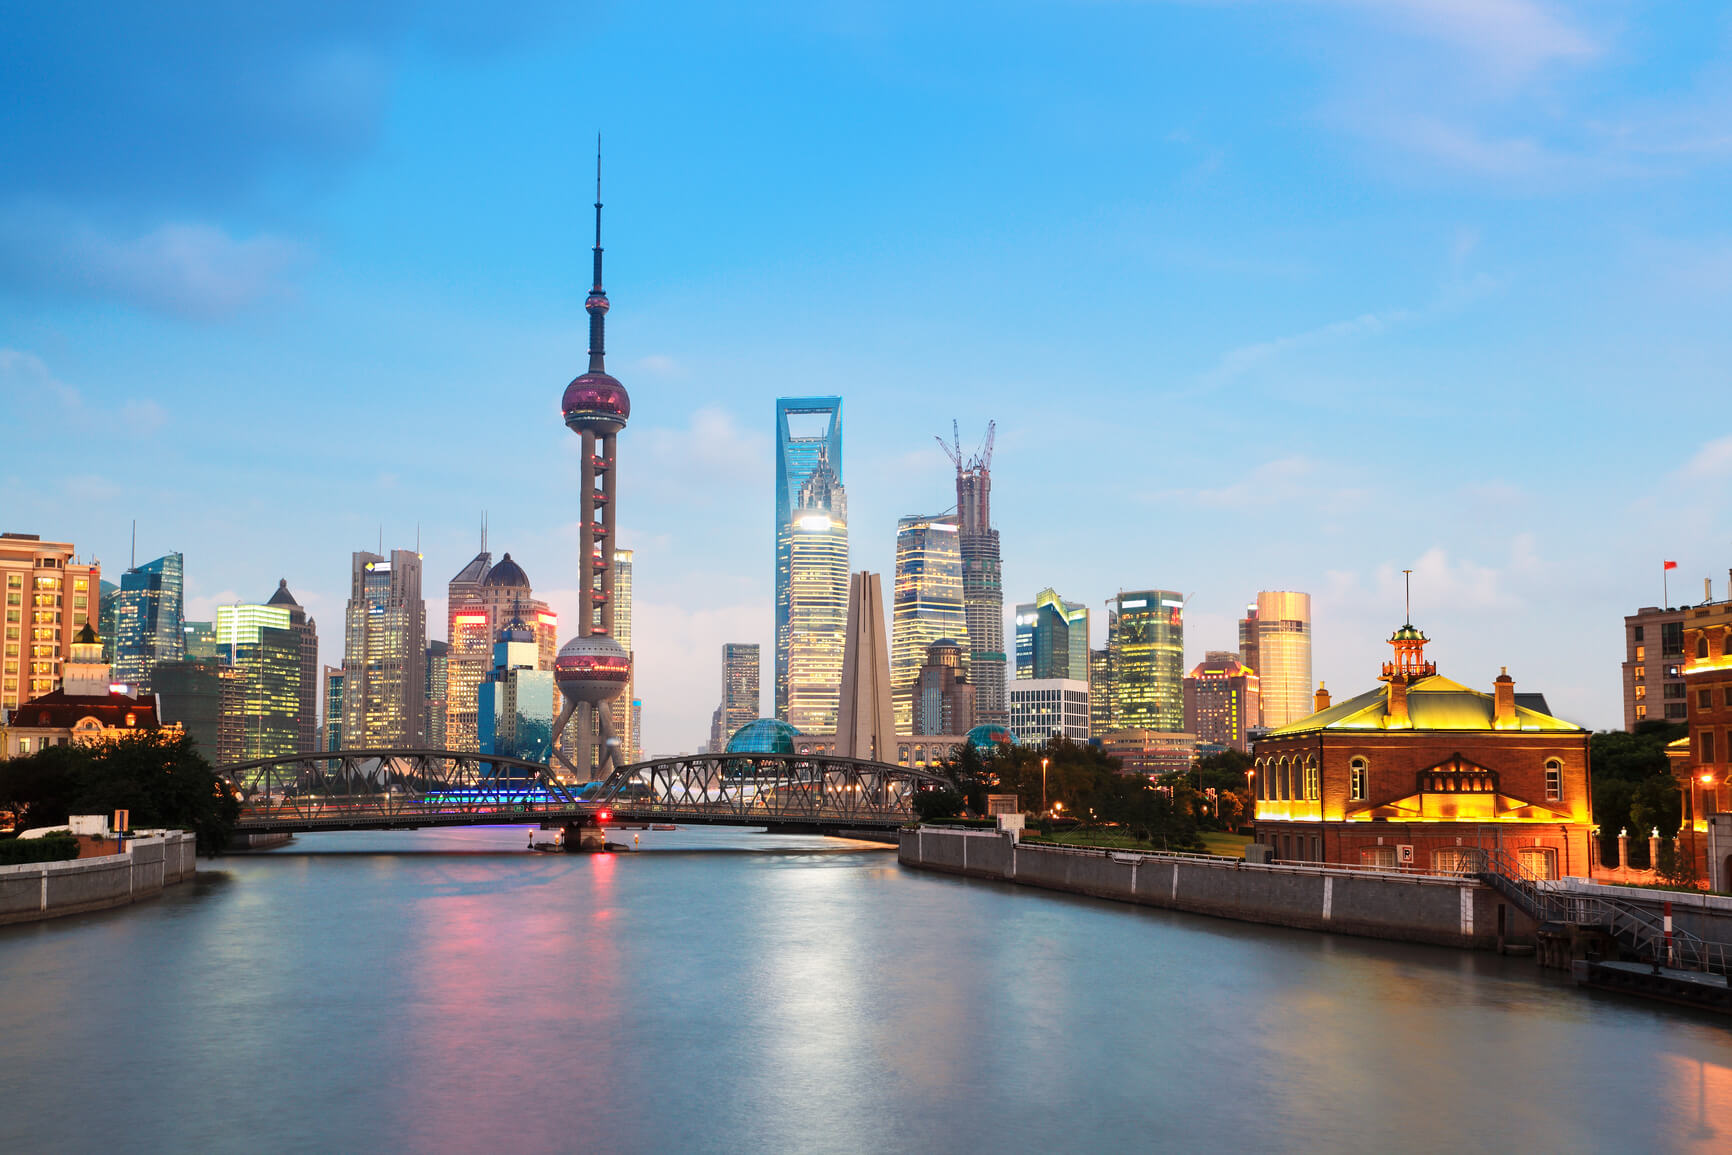 Australian cities to Shanghai, China from only $540 AUD roundtrip